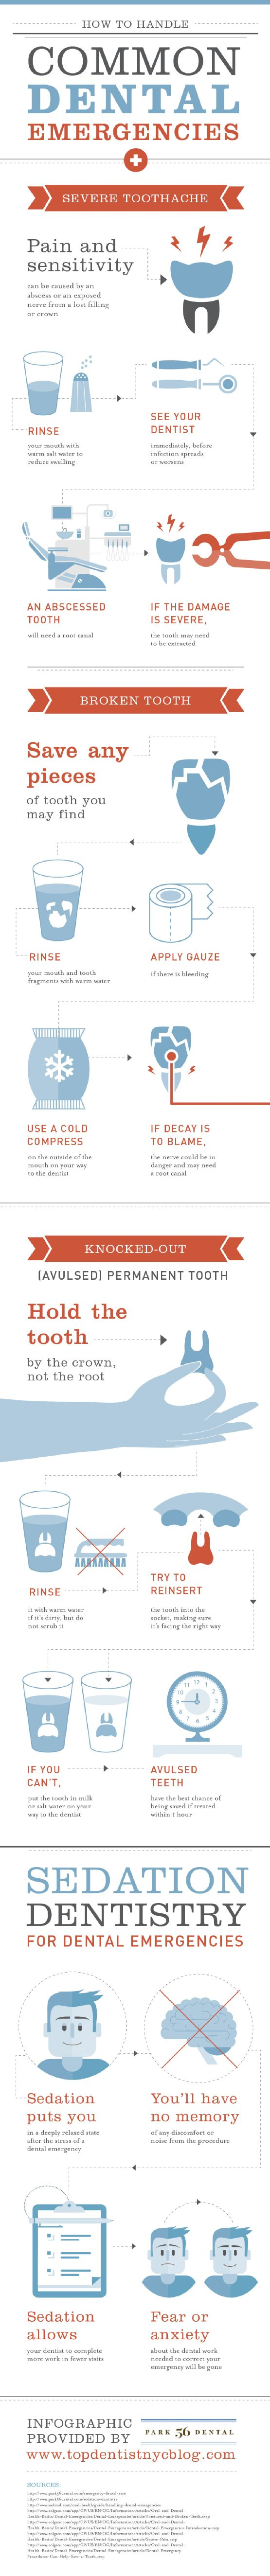 Don't ignore that painful tooth! Tooth pain can be caused by an abscess which requires immediate dental treatment. Left untreated an abscess can affect your overall health. Find out everything you need to know about your dental emergency in this infographic from a New York Dentist.